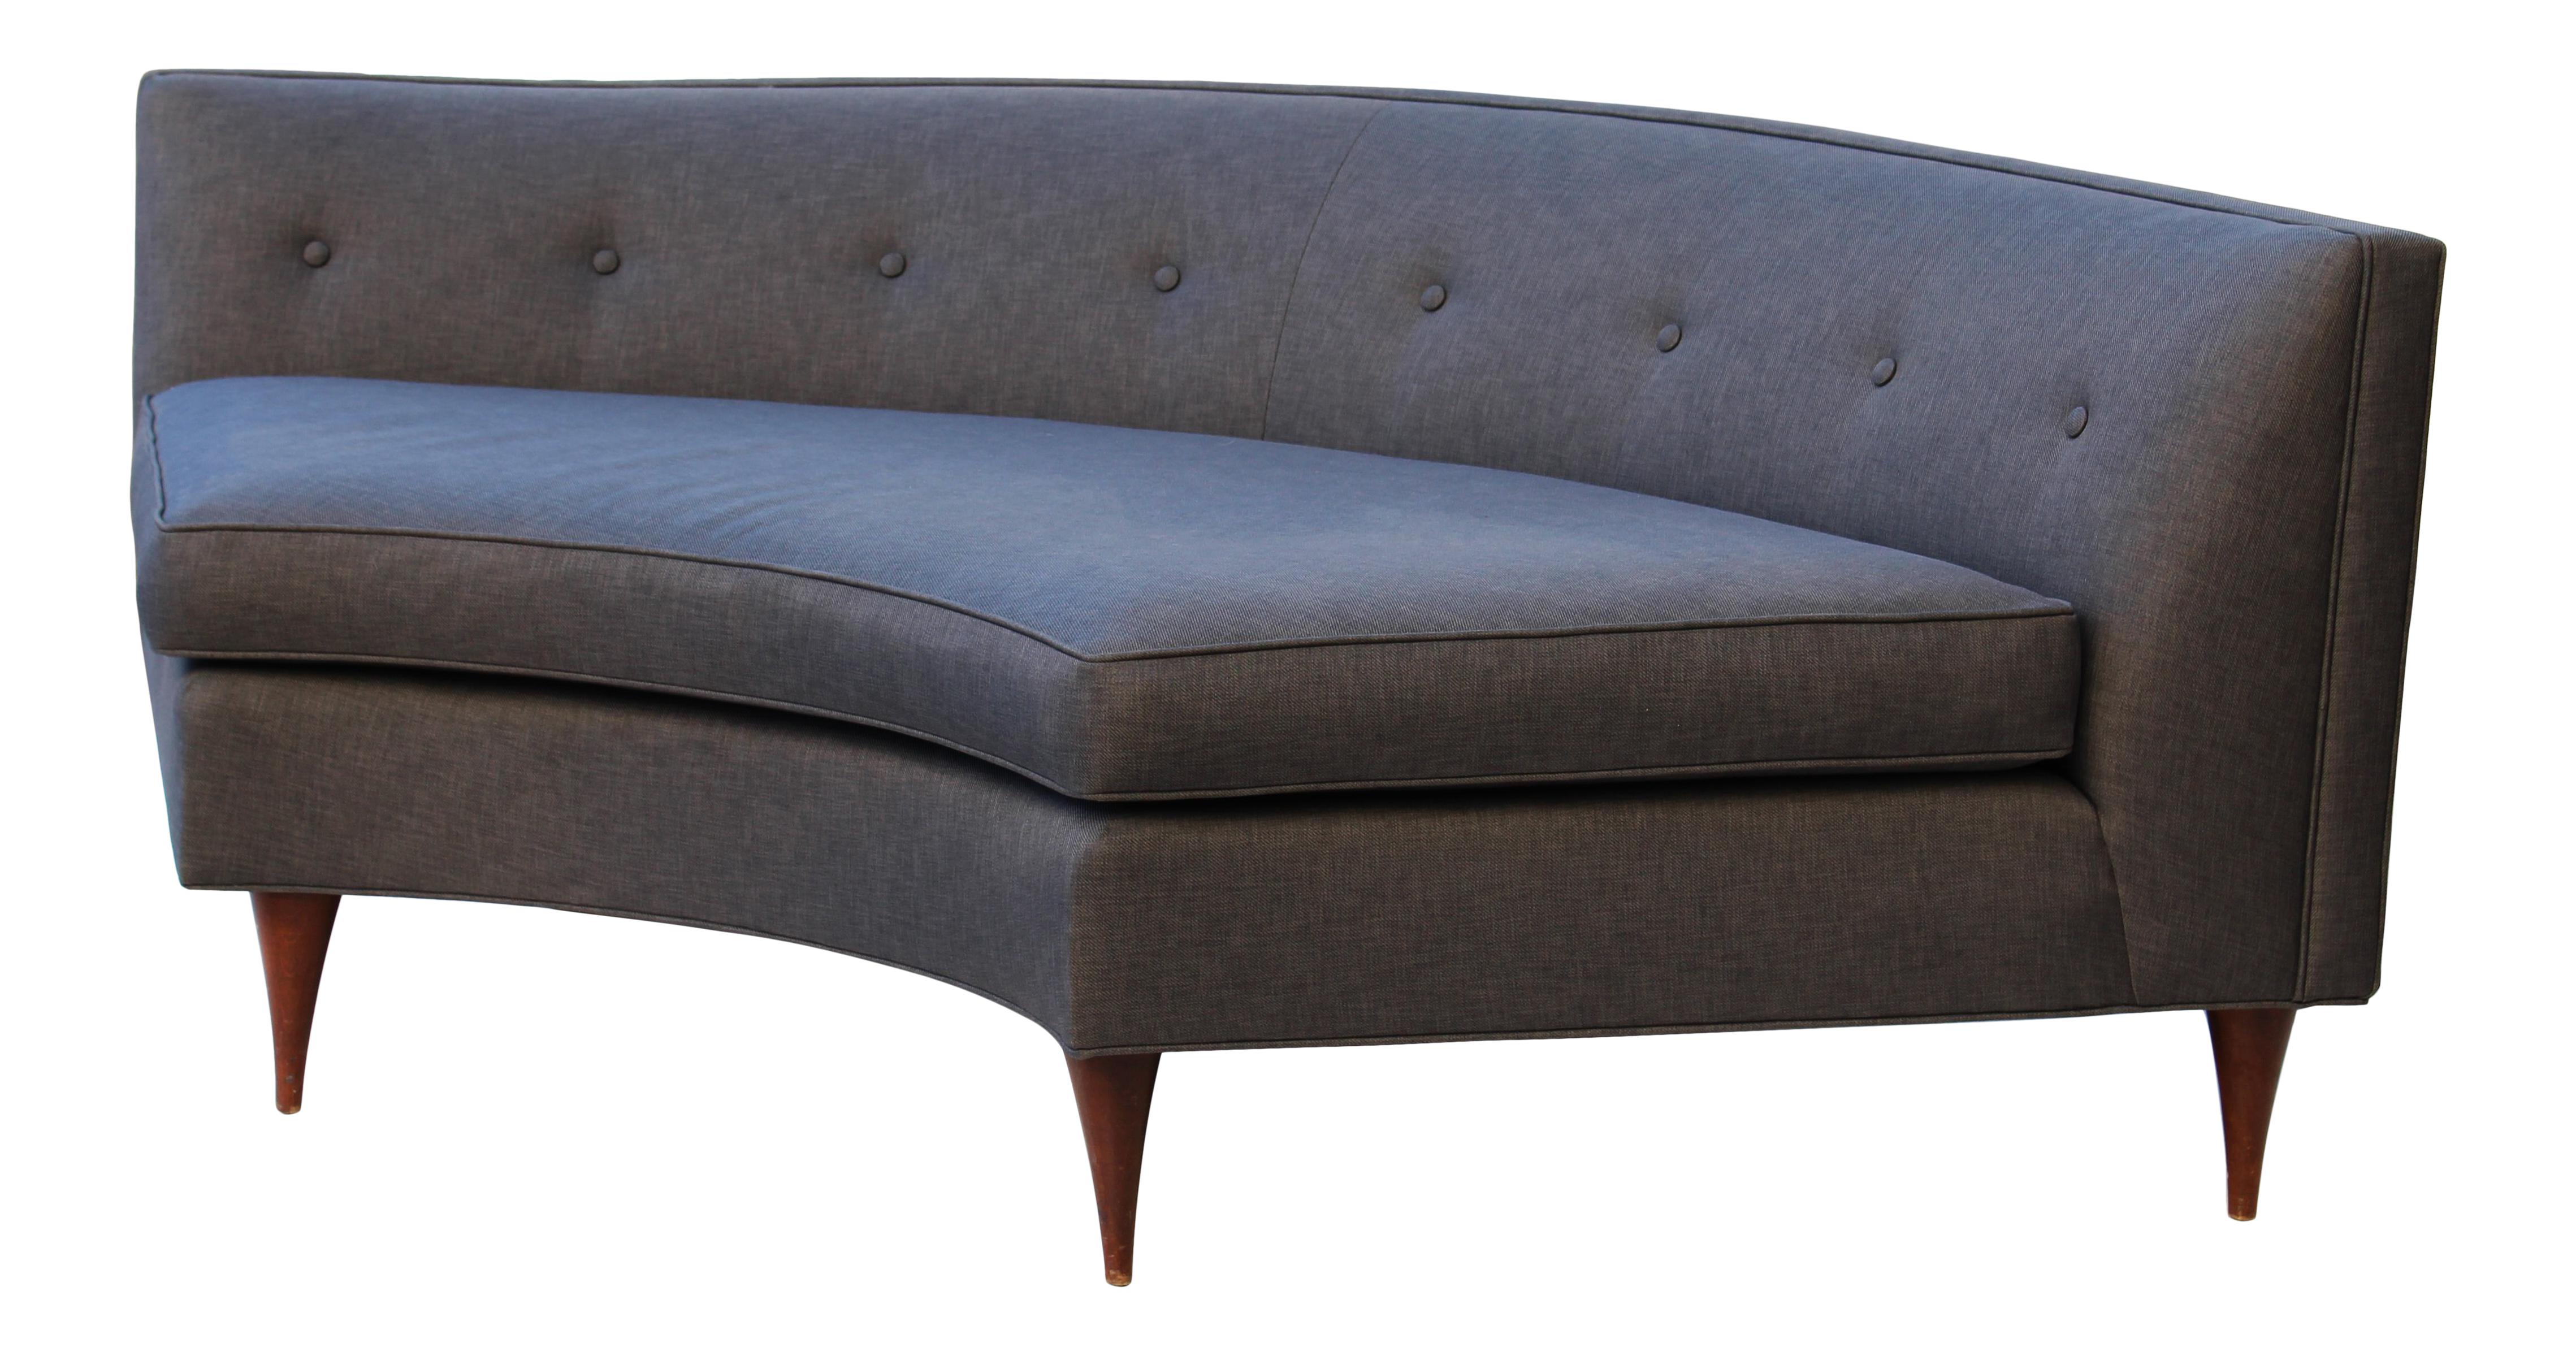 Captivating Tufted Mid Century Settee, Banquette, Or Loveseat Nice Design